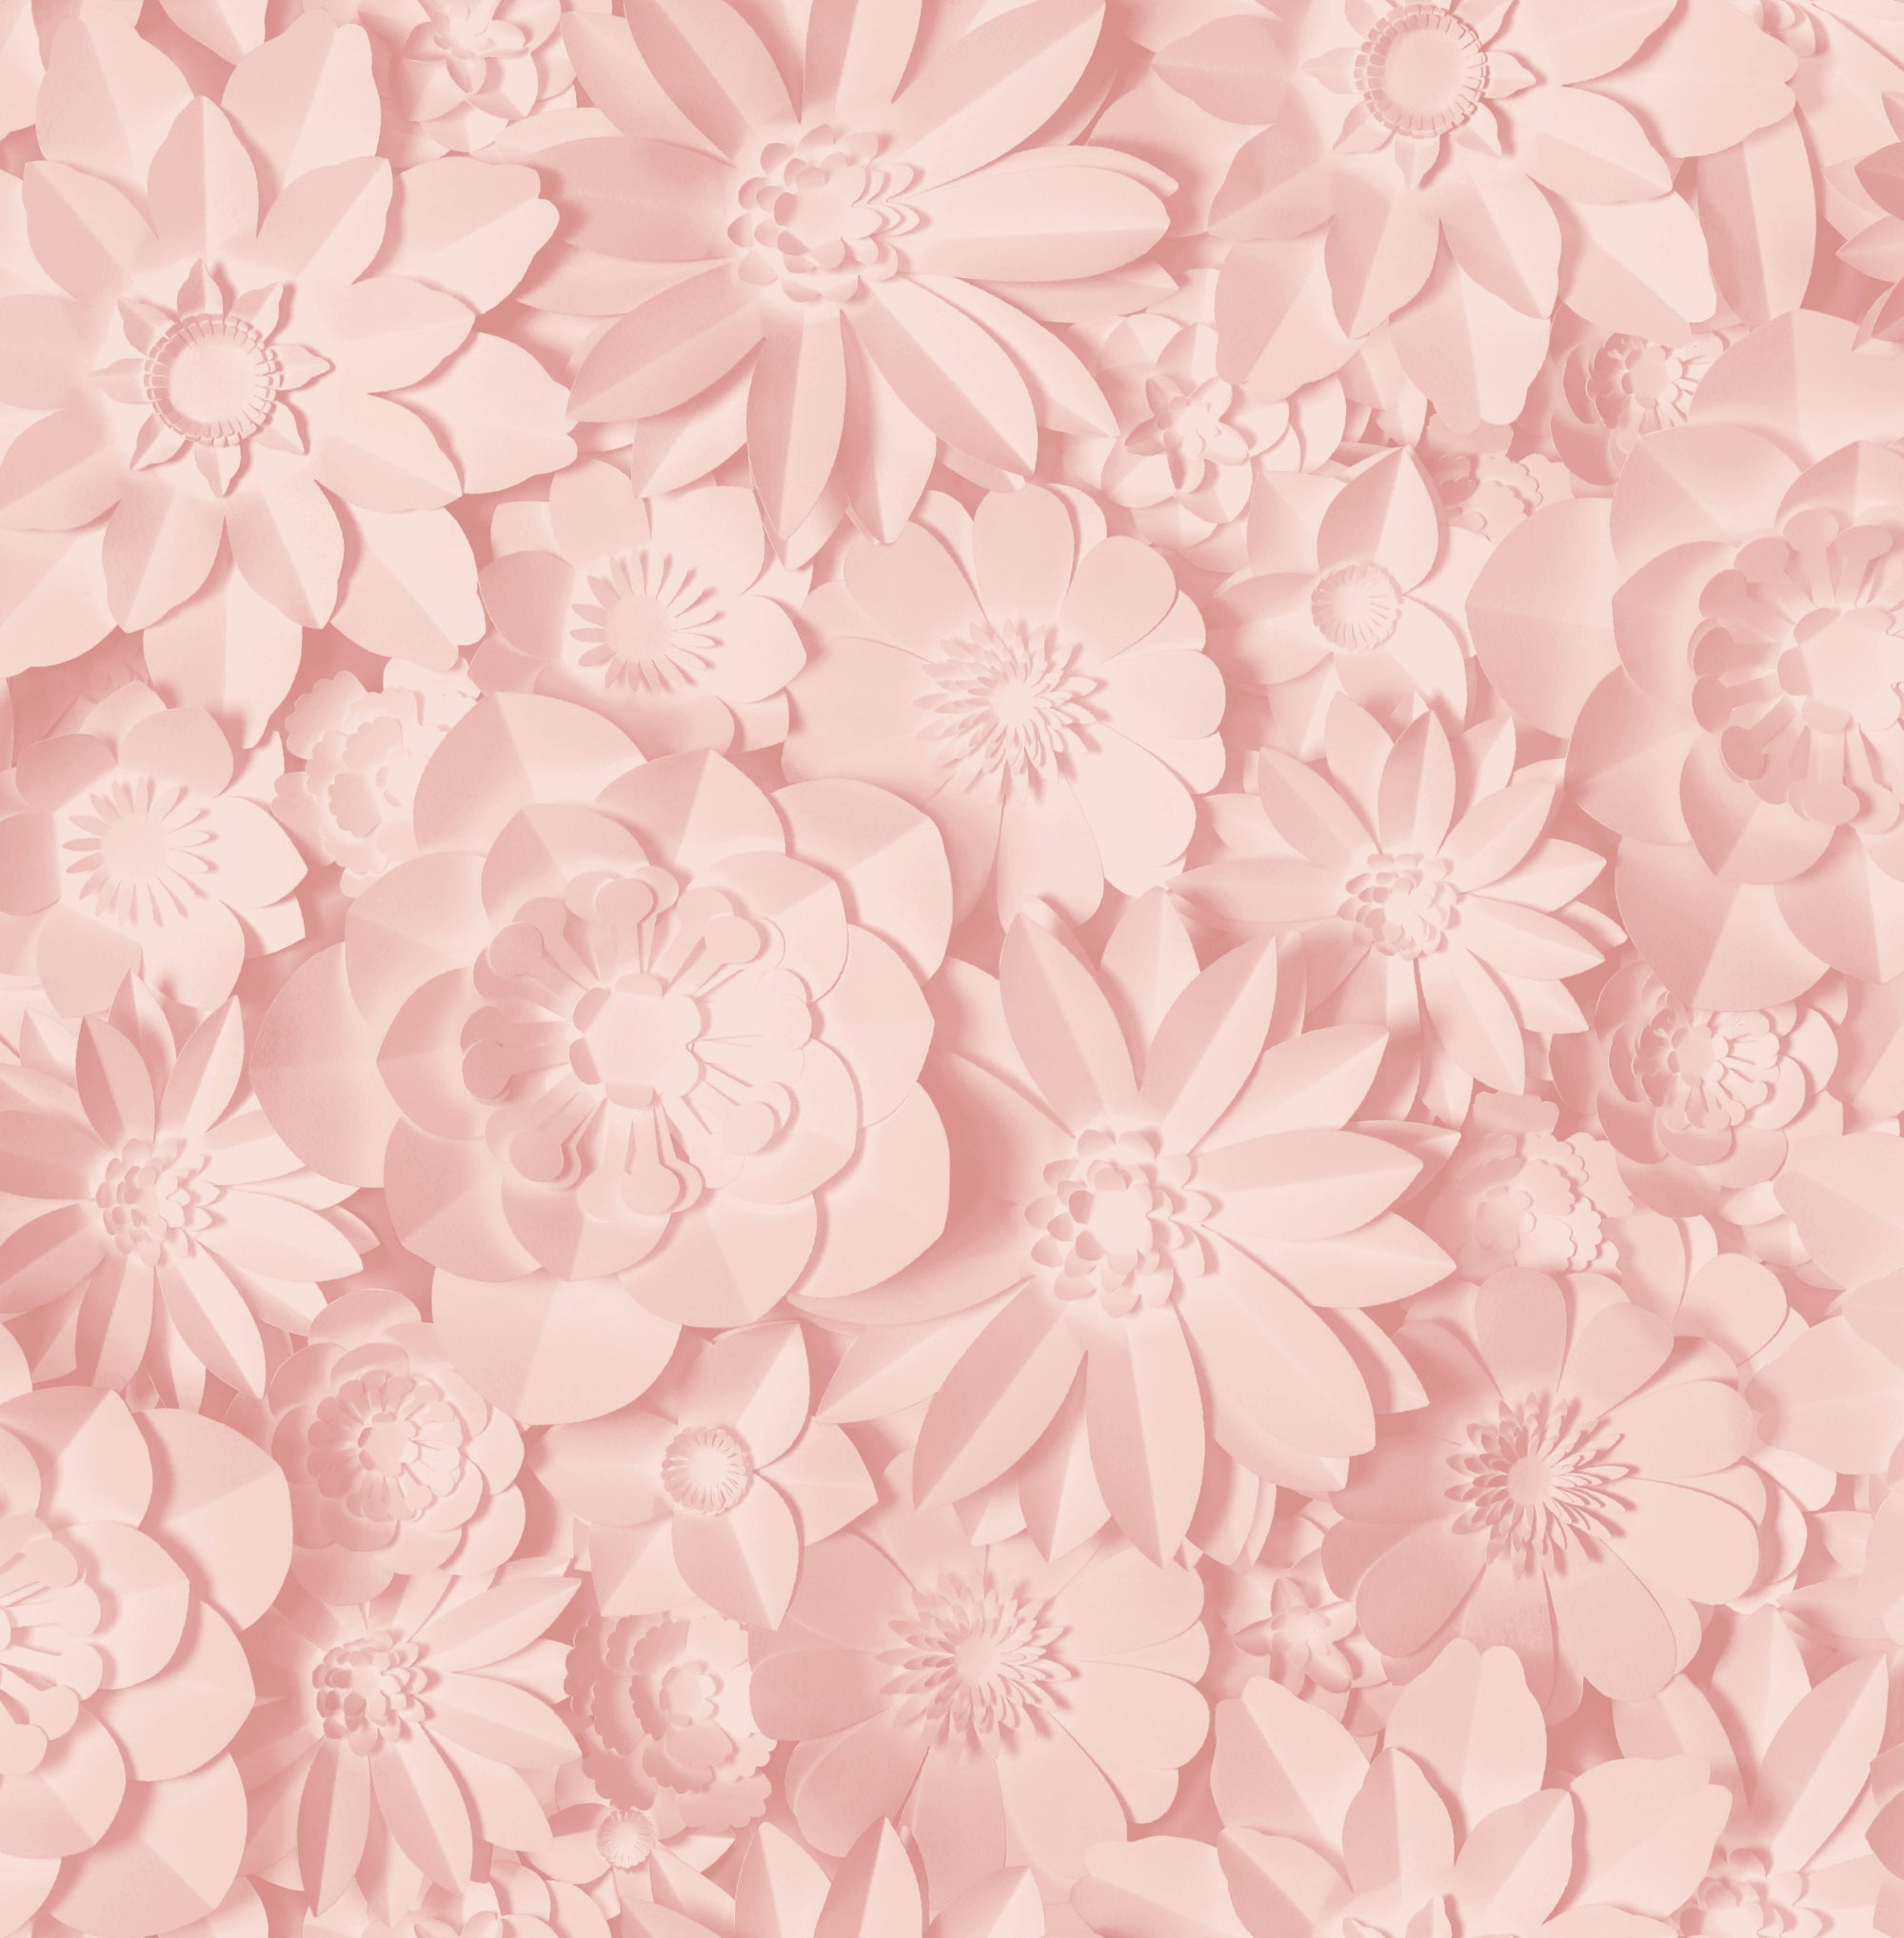 Fine Decor Wallpaper Dimensions Floral Blush Pink Fd42555